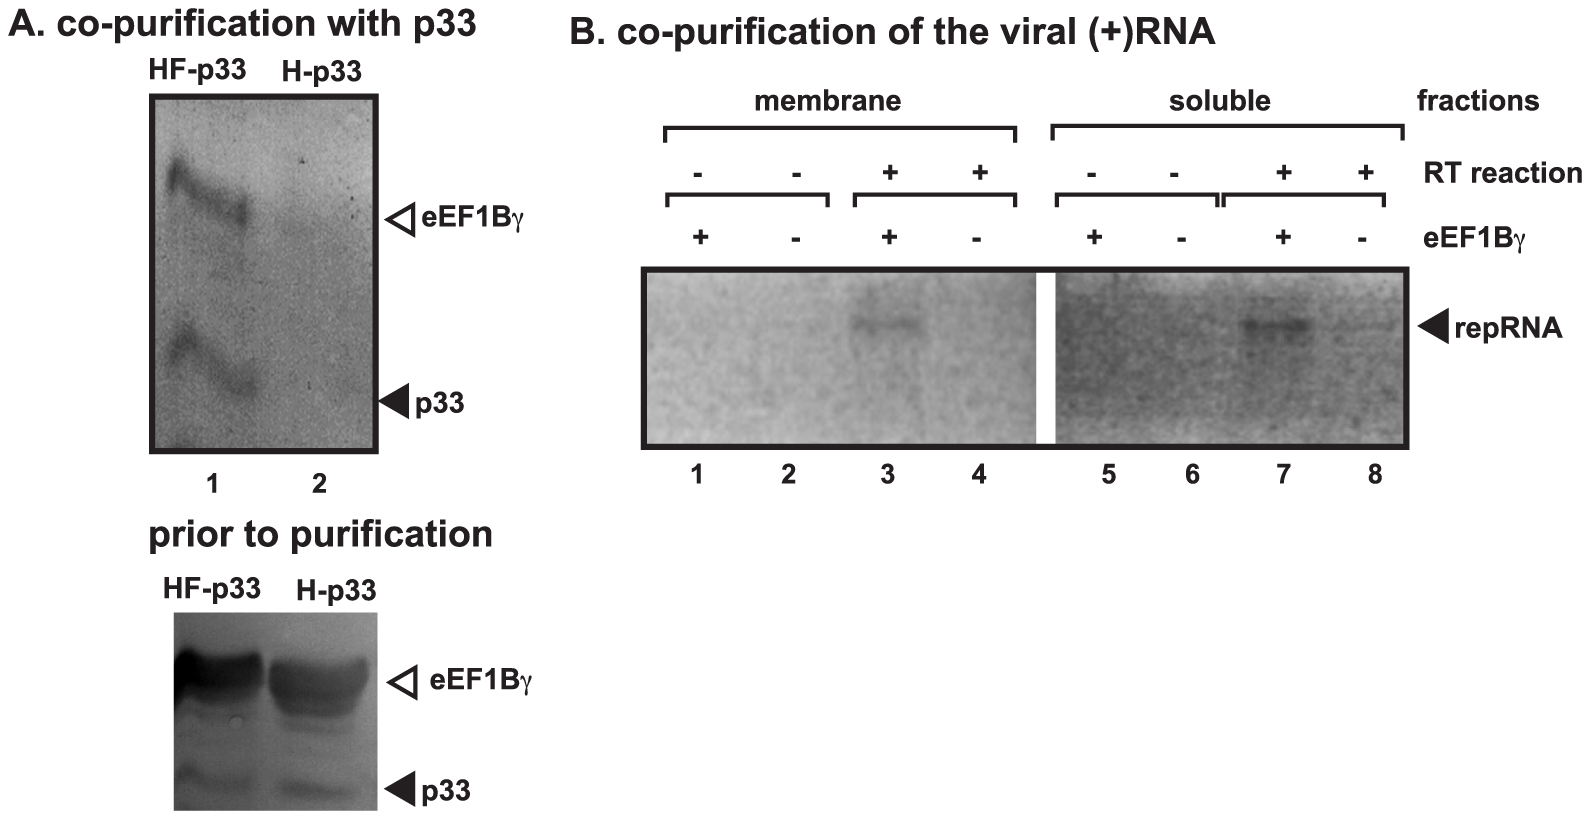 Co-purification of eEF1Bγ with the p33 replication protein and the viral RNA from yeast.